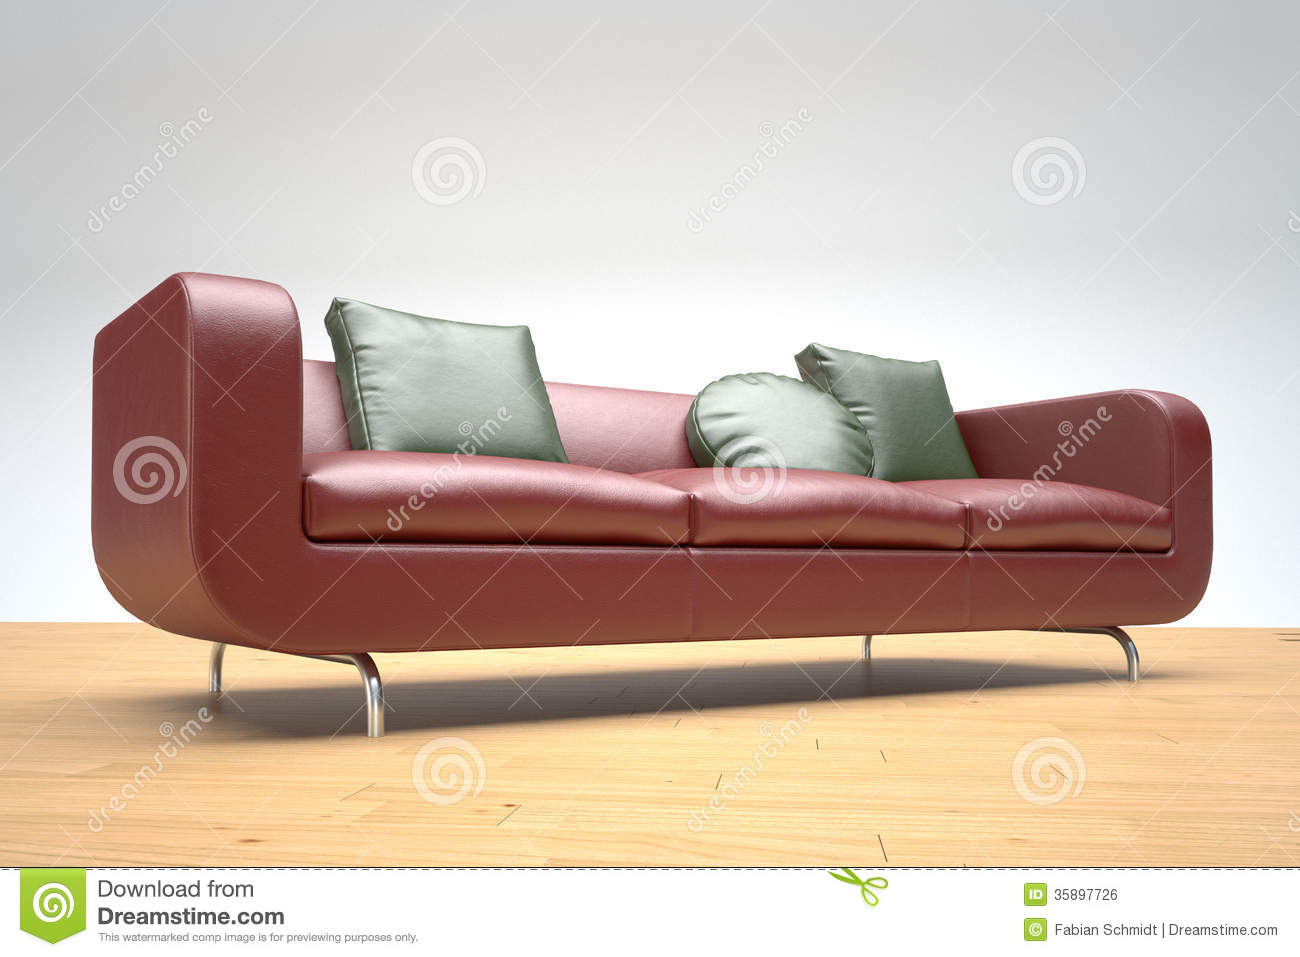 Red leather sofa and green cushions stock illustration for Red white sofa